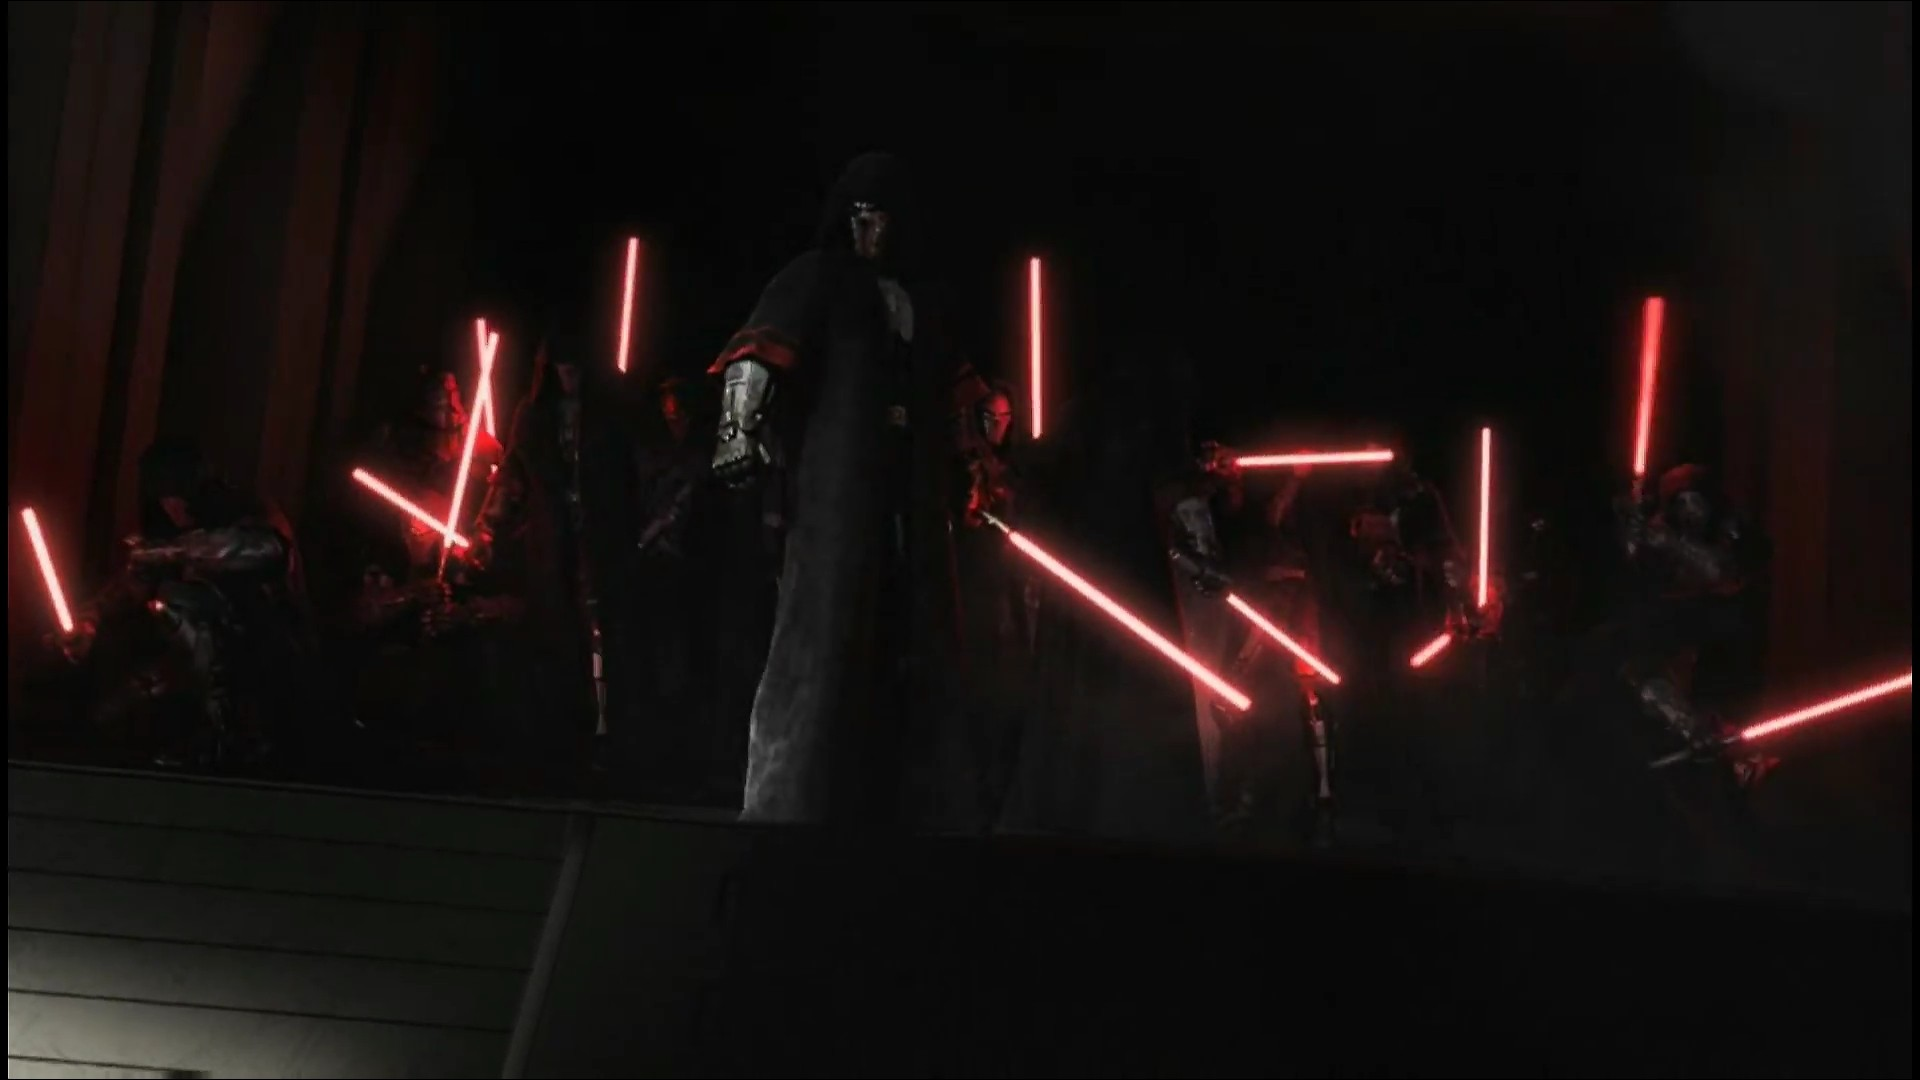 sith wallpaper 1080p star - photo #13